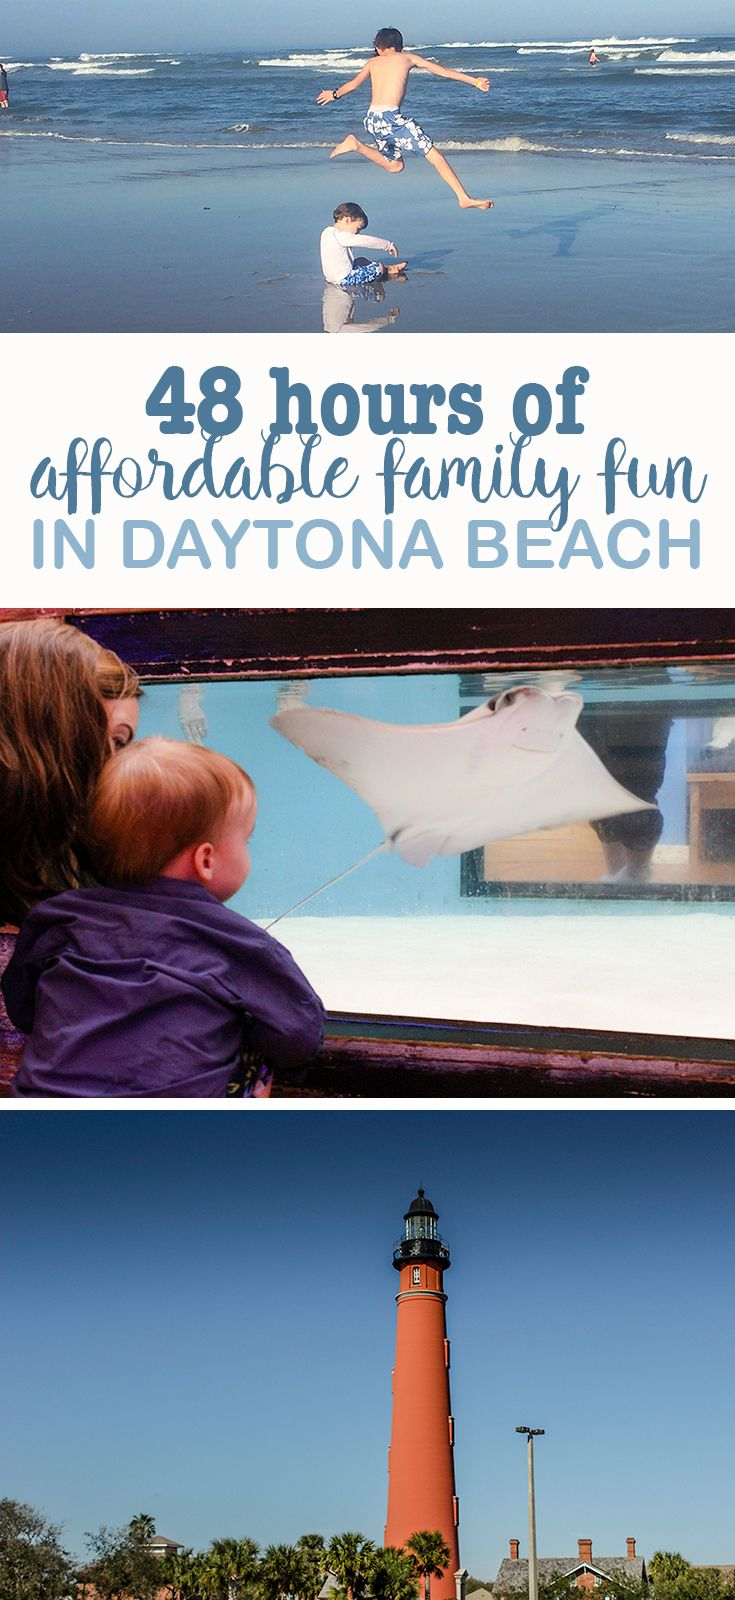 Looking for a great family beach destination that doesn't cost a fortune? You'll love a Daytona Beach family vacation. We spend 48 hours there and enjoyed a lot of affordable family fun in Daytona Beach.   48 hours of affordable family fun in Daytona Beach http://eatdrinkandsavemoney.com/2017/02/24/daytona-beach-family-vacation/